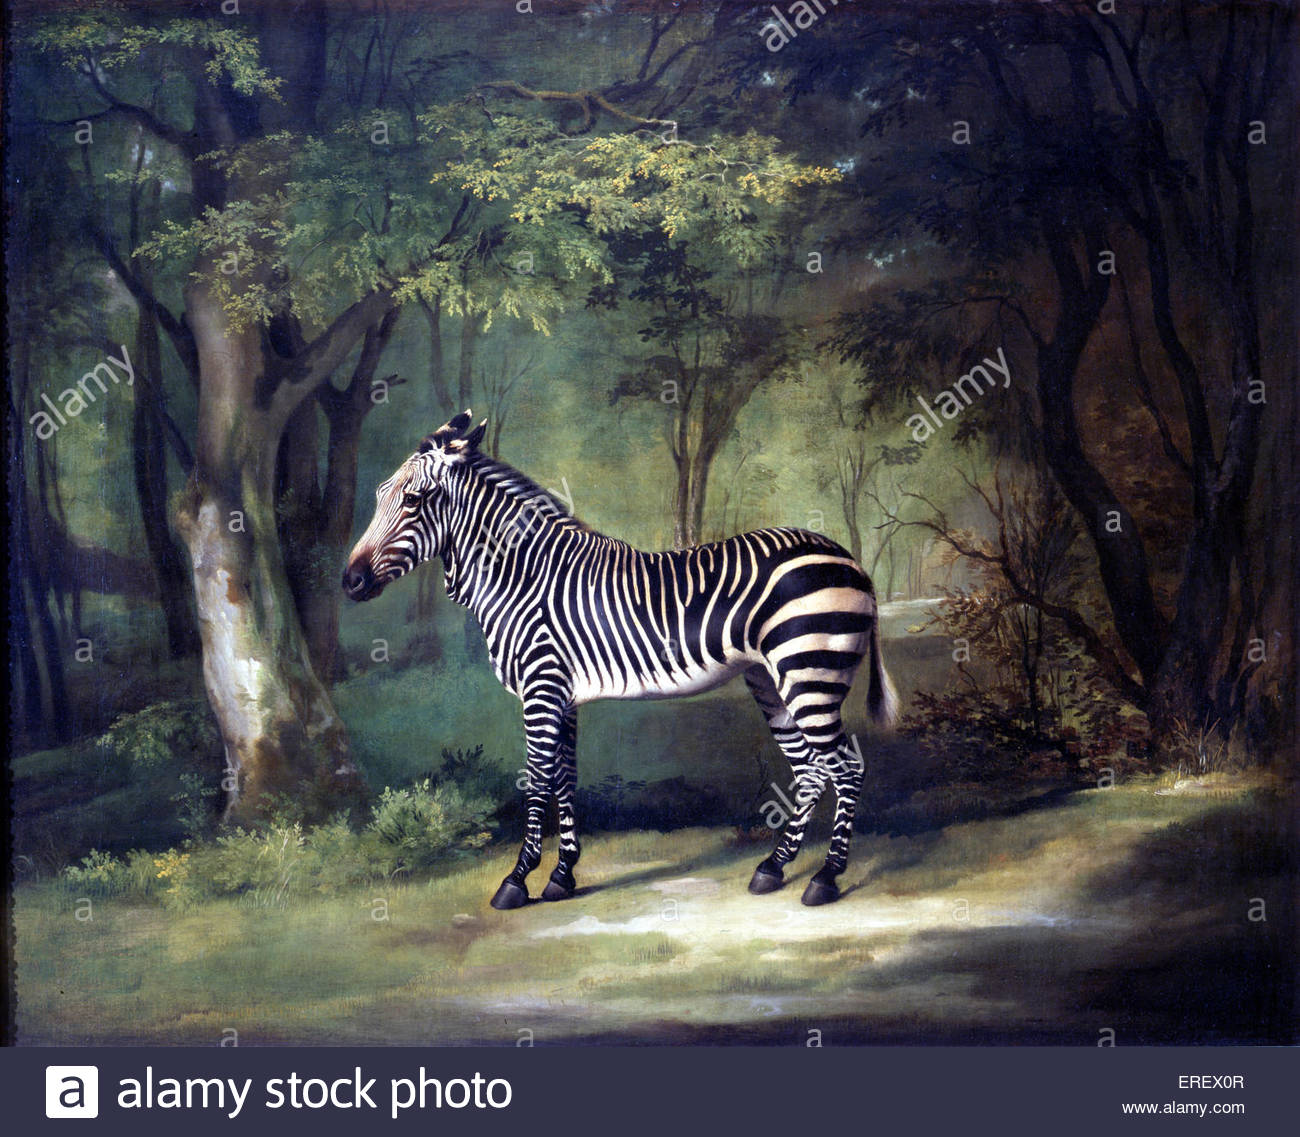 Zebra by George Stubbs, 1762 -63. Oil on canvas, 103 x 127.5 cm. GS: English painter, 25 August 1724 – 10 July 1806. - Stock Image